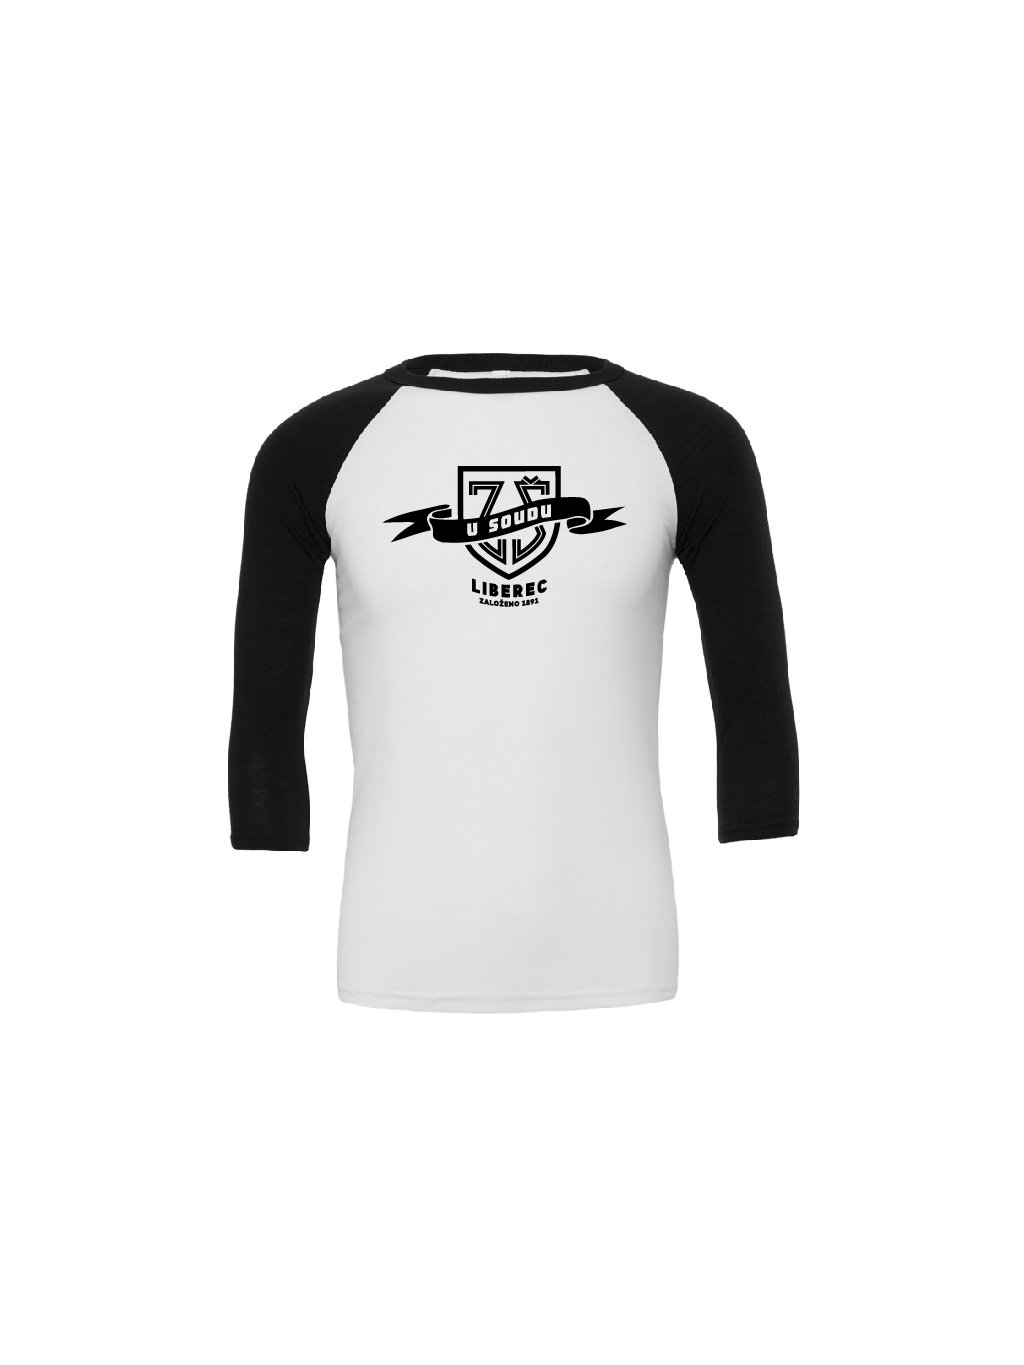 baseball dospele white black 176